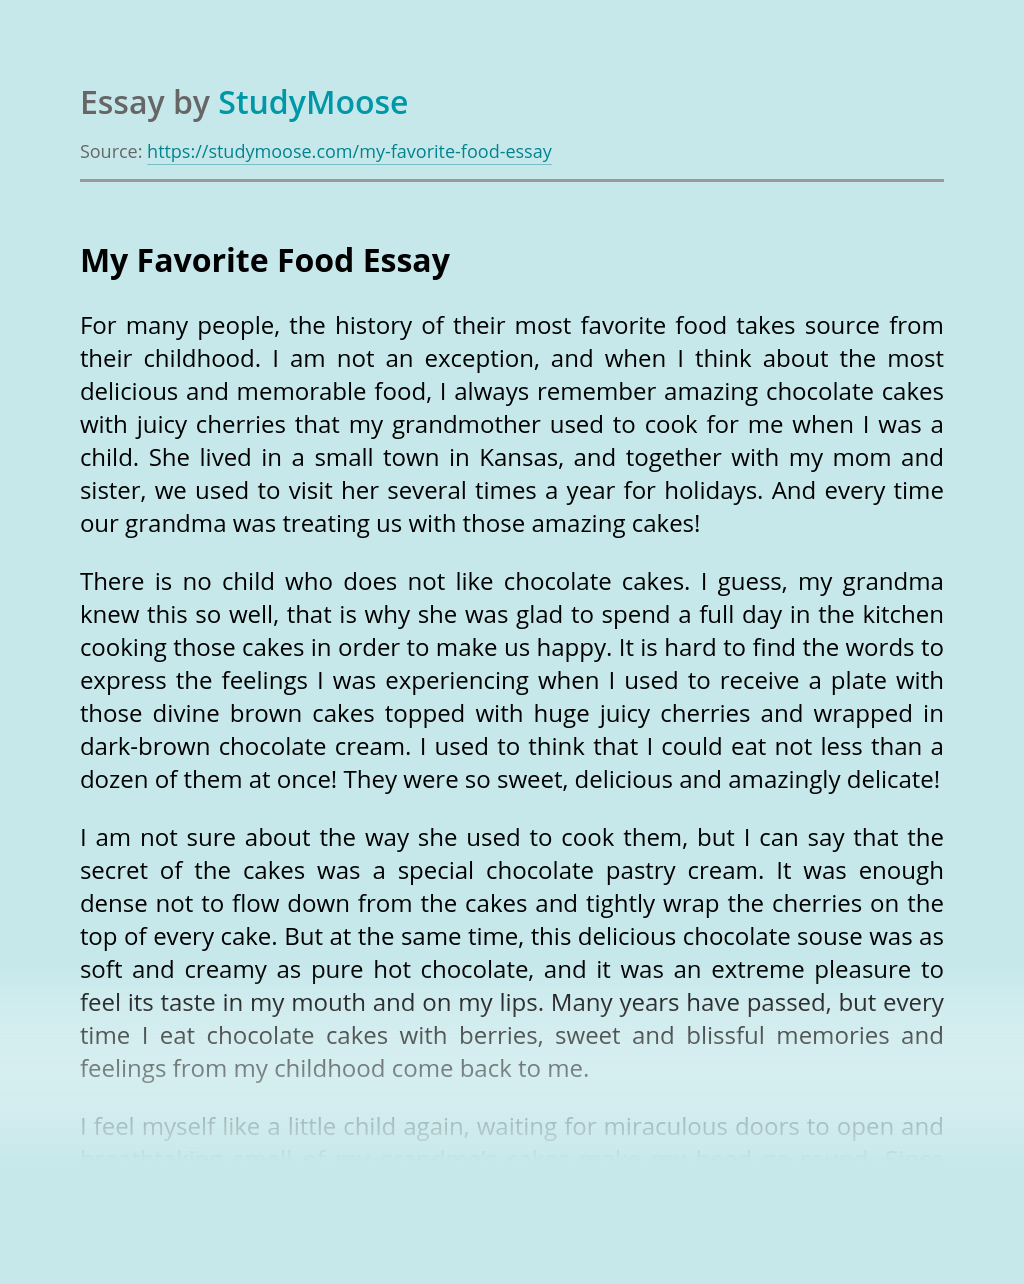 Essay my favorite food